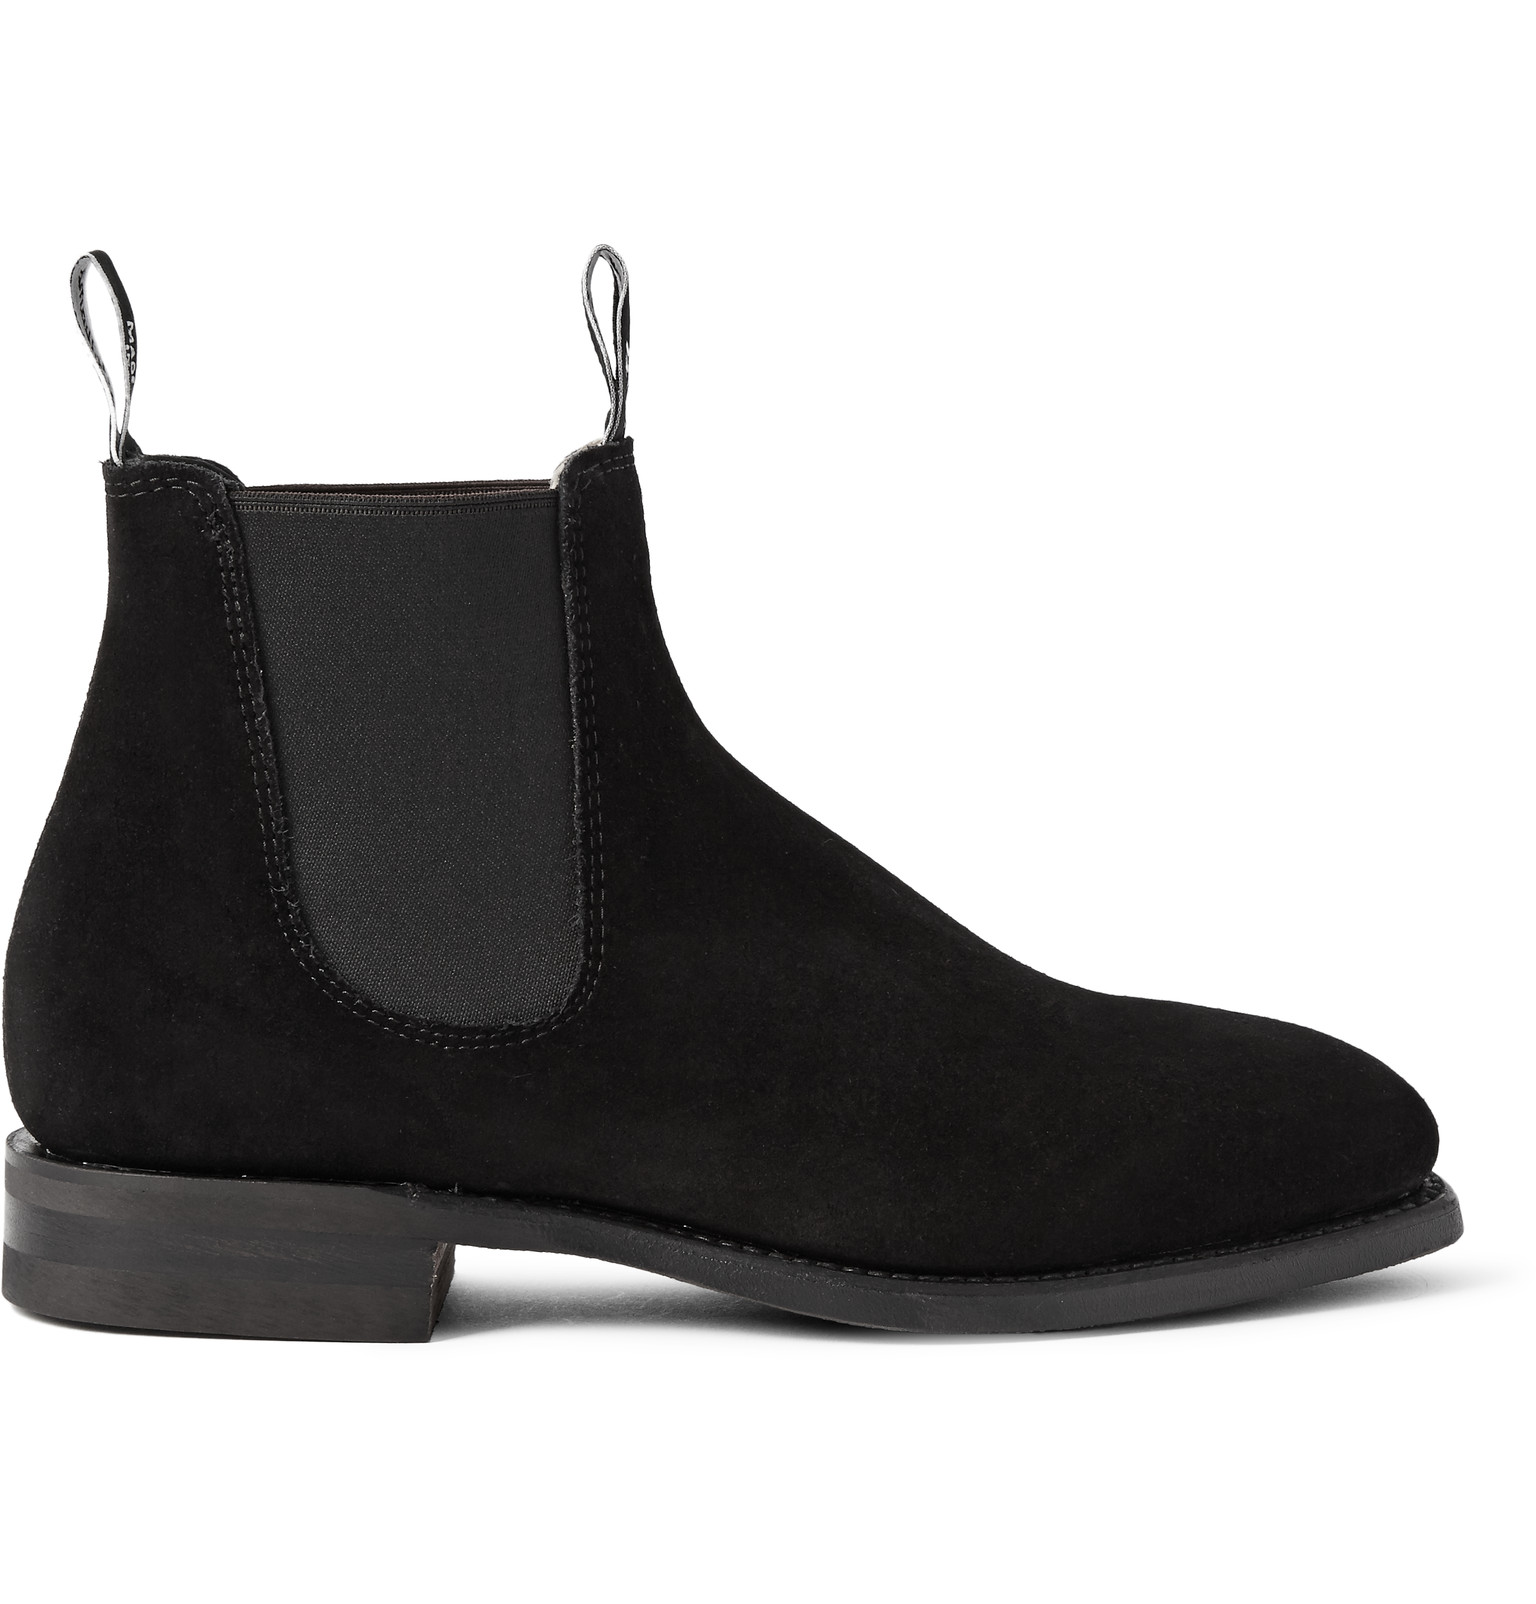 b0a9f58edebe12 R.M.Williams - Comfort Craftsman Suede Chelsea Boots